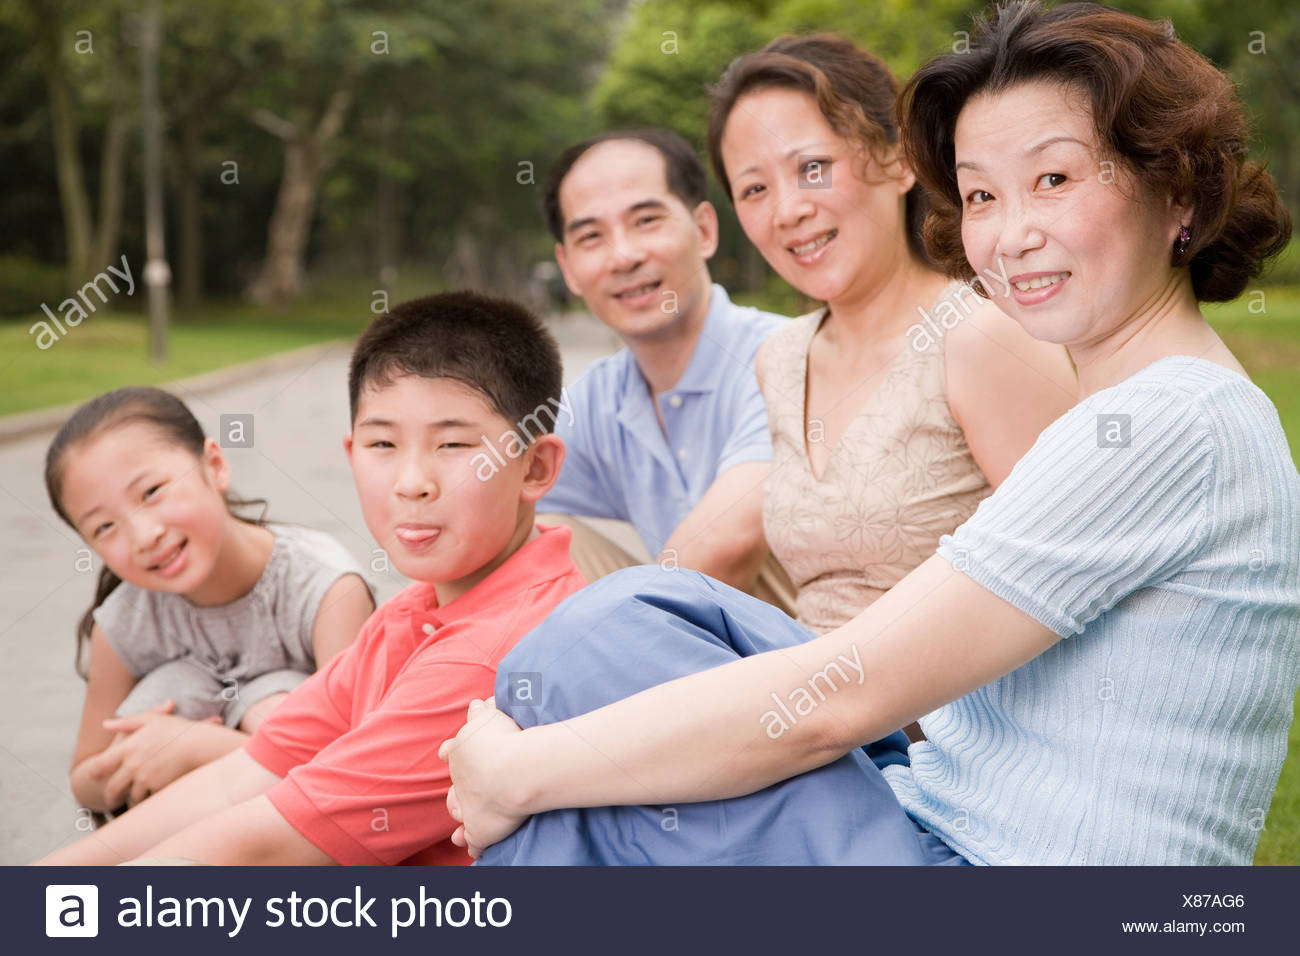 Portrait of a three generation family sitting together in a garden - Stock Image